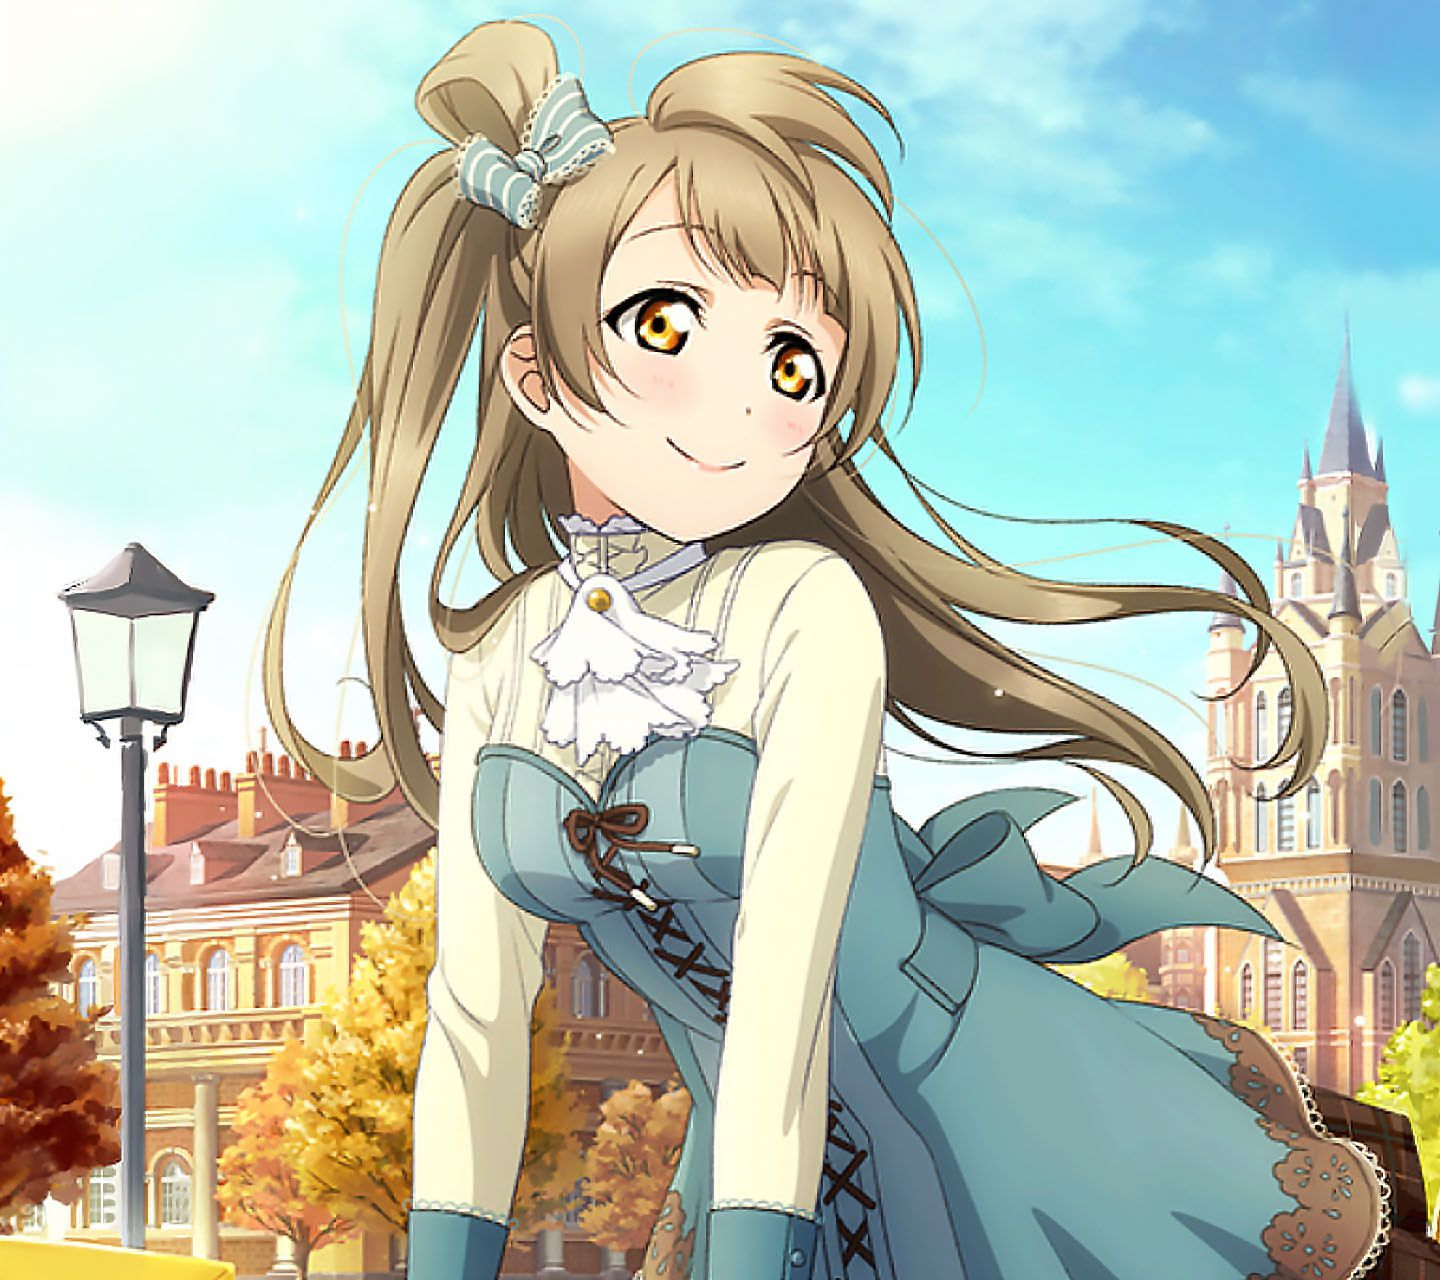 26904_lovelive_Android